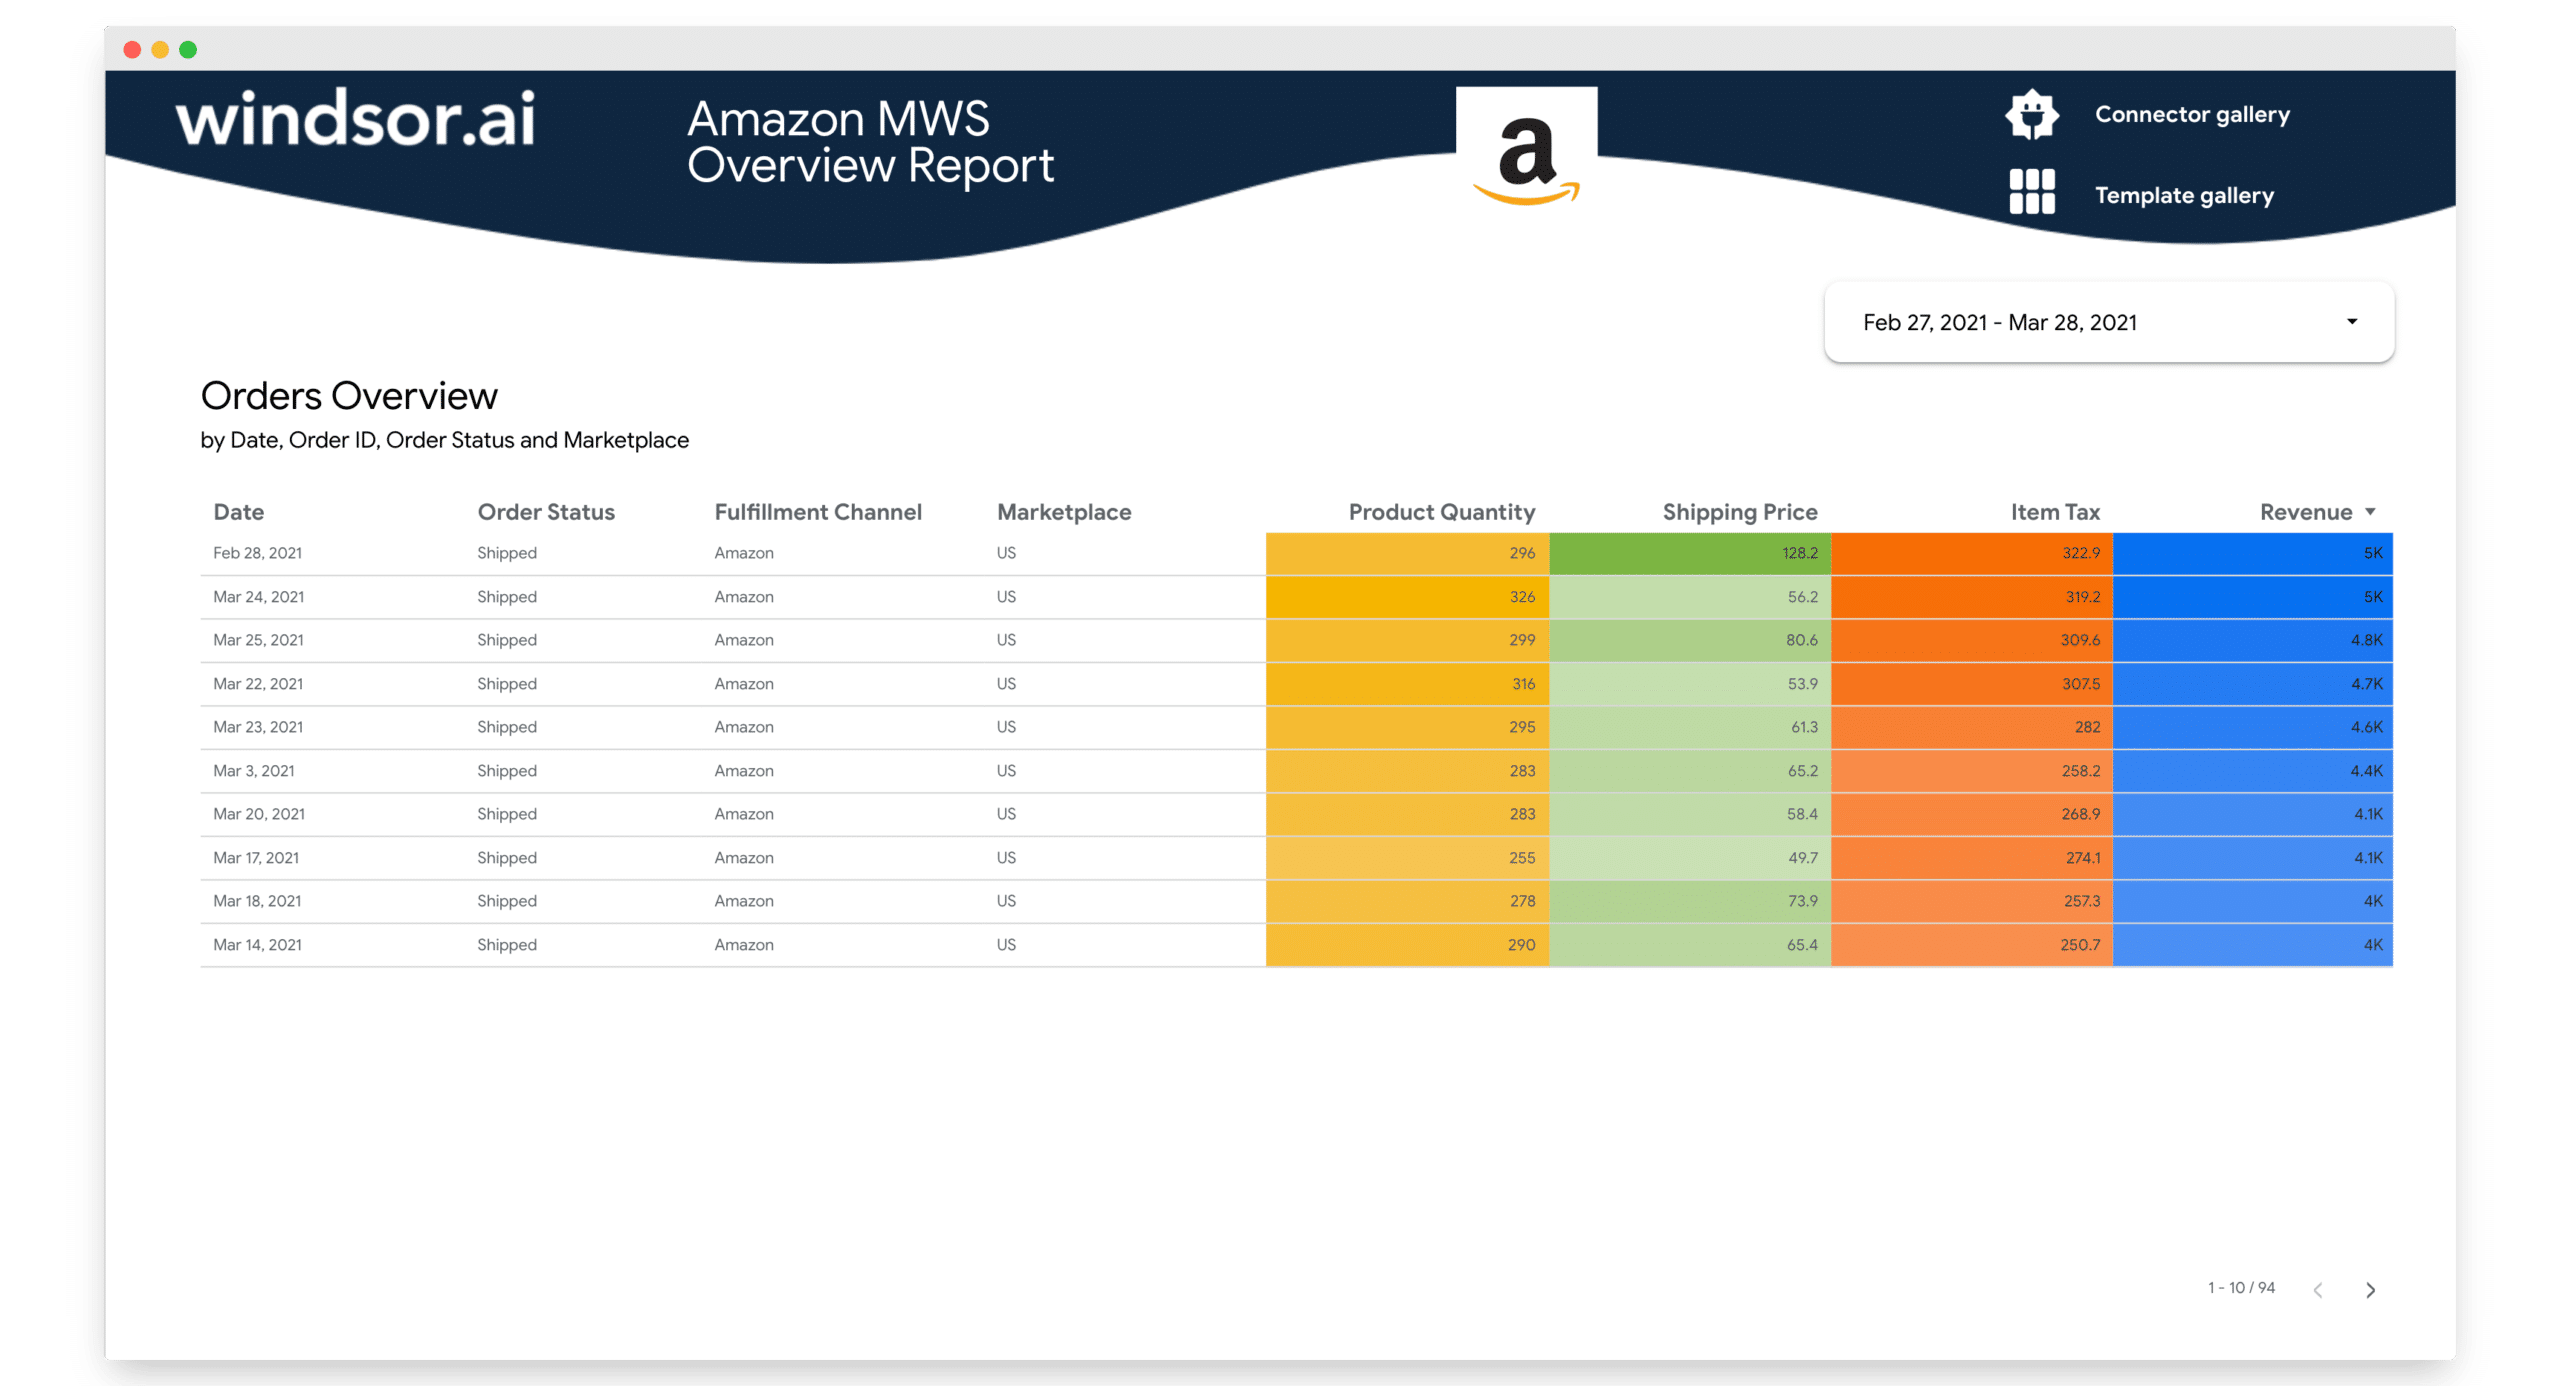 amazon mws overview report